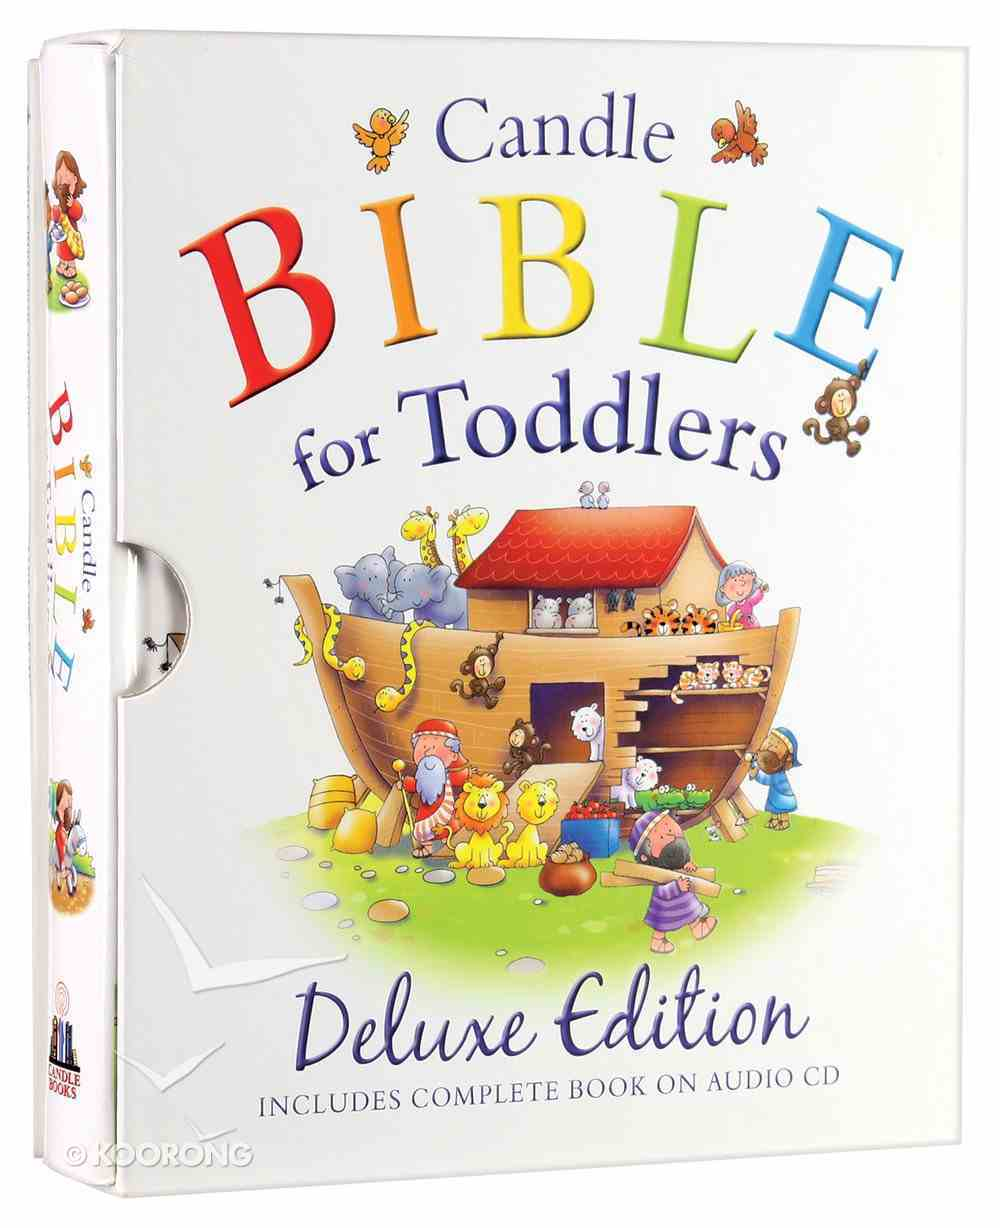 Deluxe Edition With Audio CD (Gemma Hunt Reading) (Candle Bible For Toddlers Series) Pack